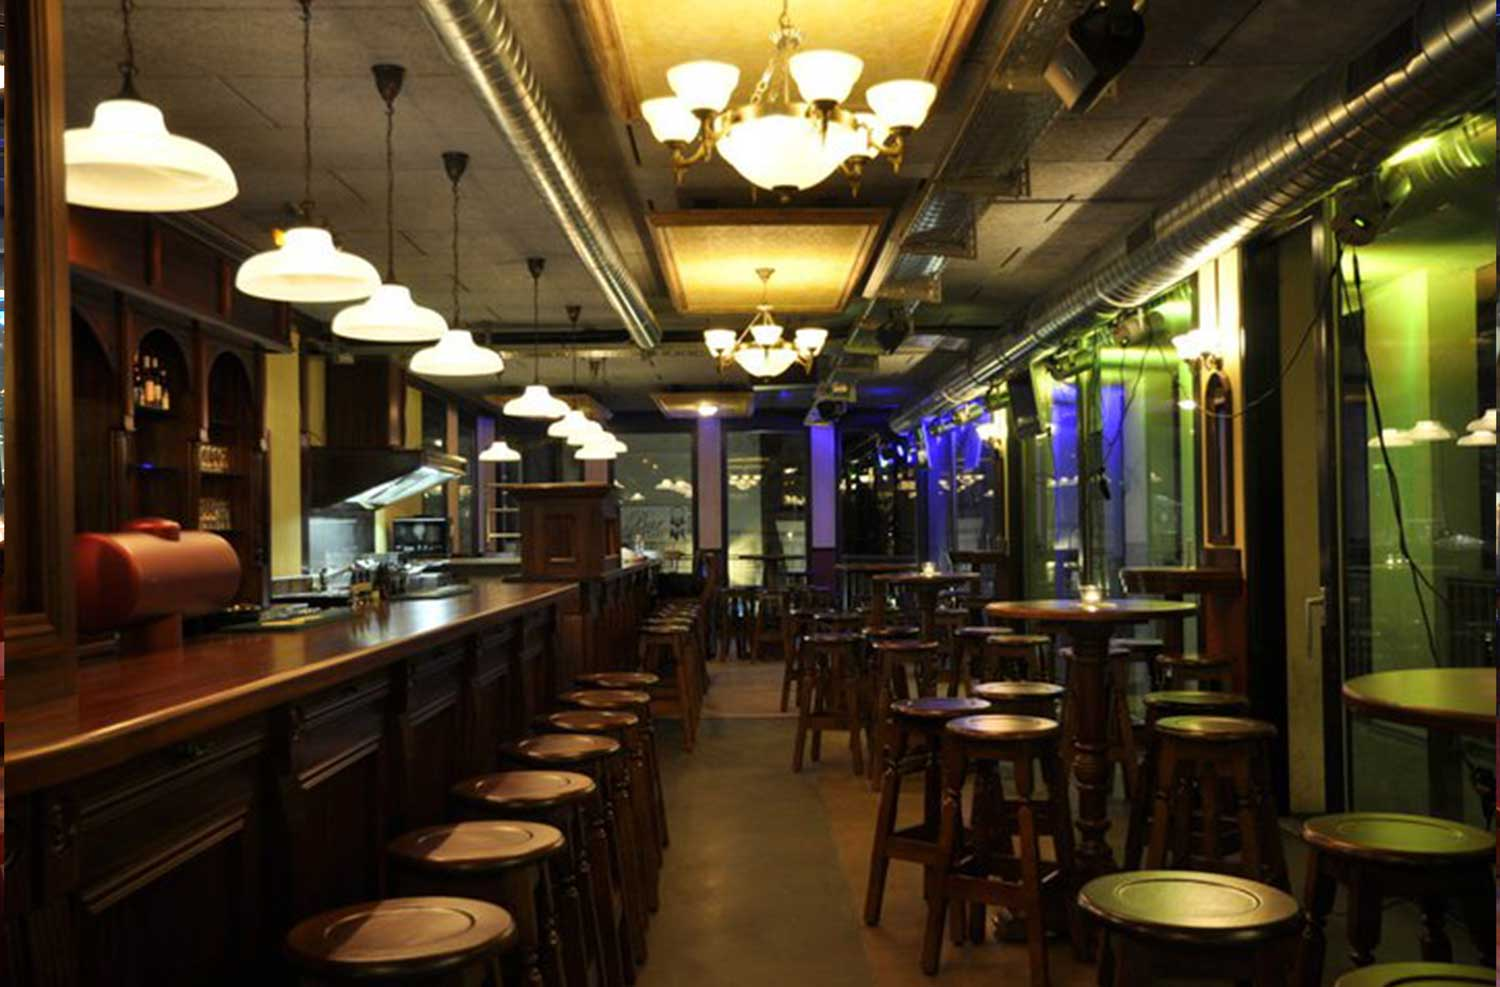 Peggy O'Neil's Irish bar design - interior wooden bar with stools lined up and high wooden tables with stools